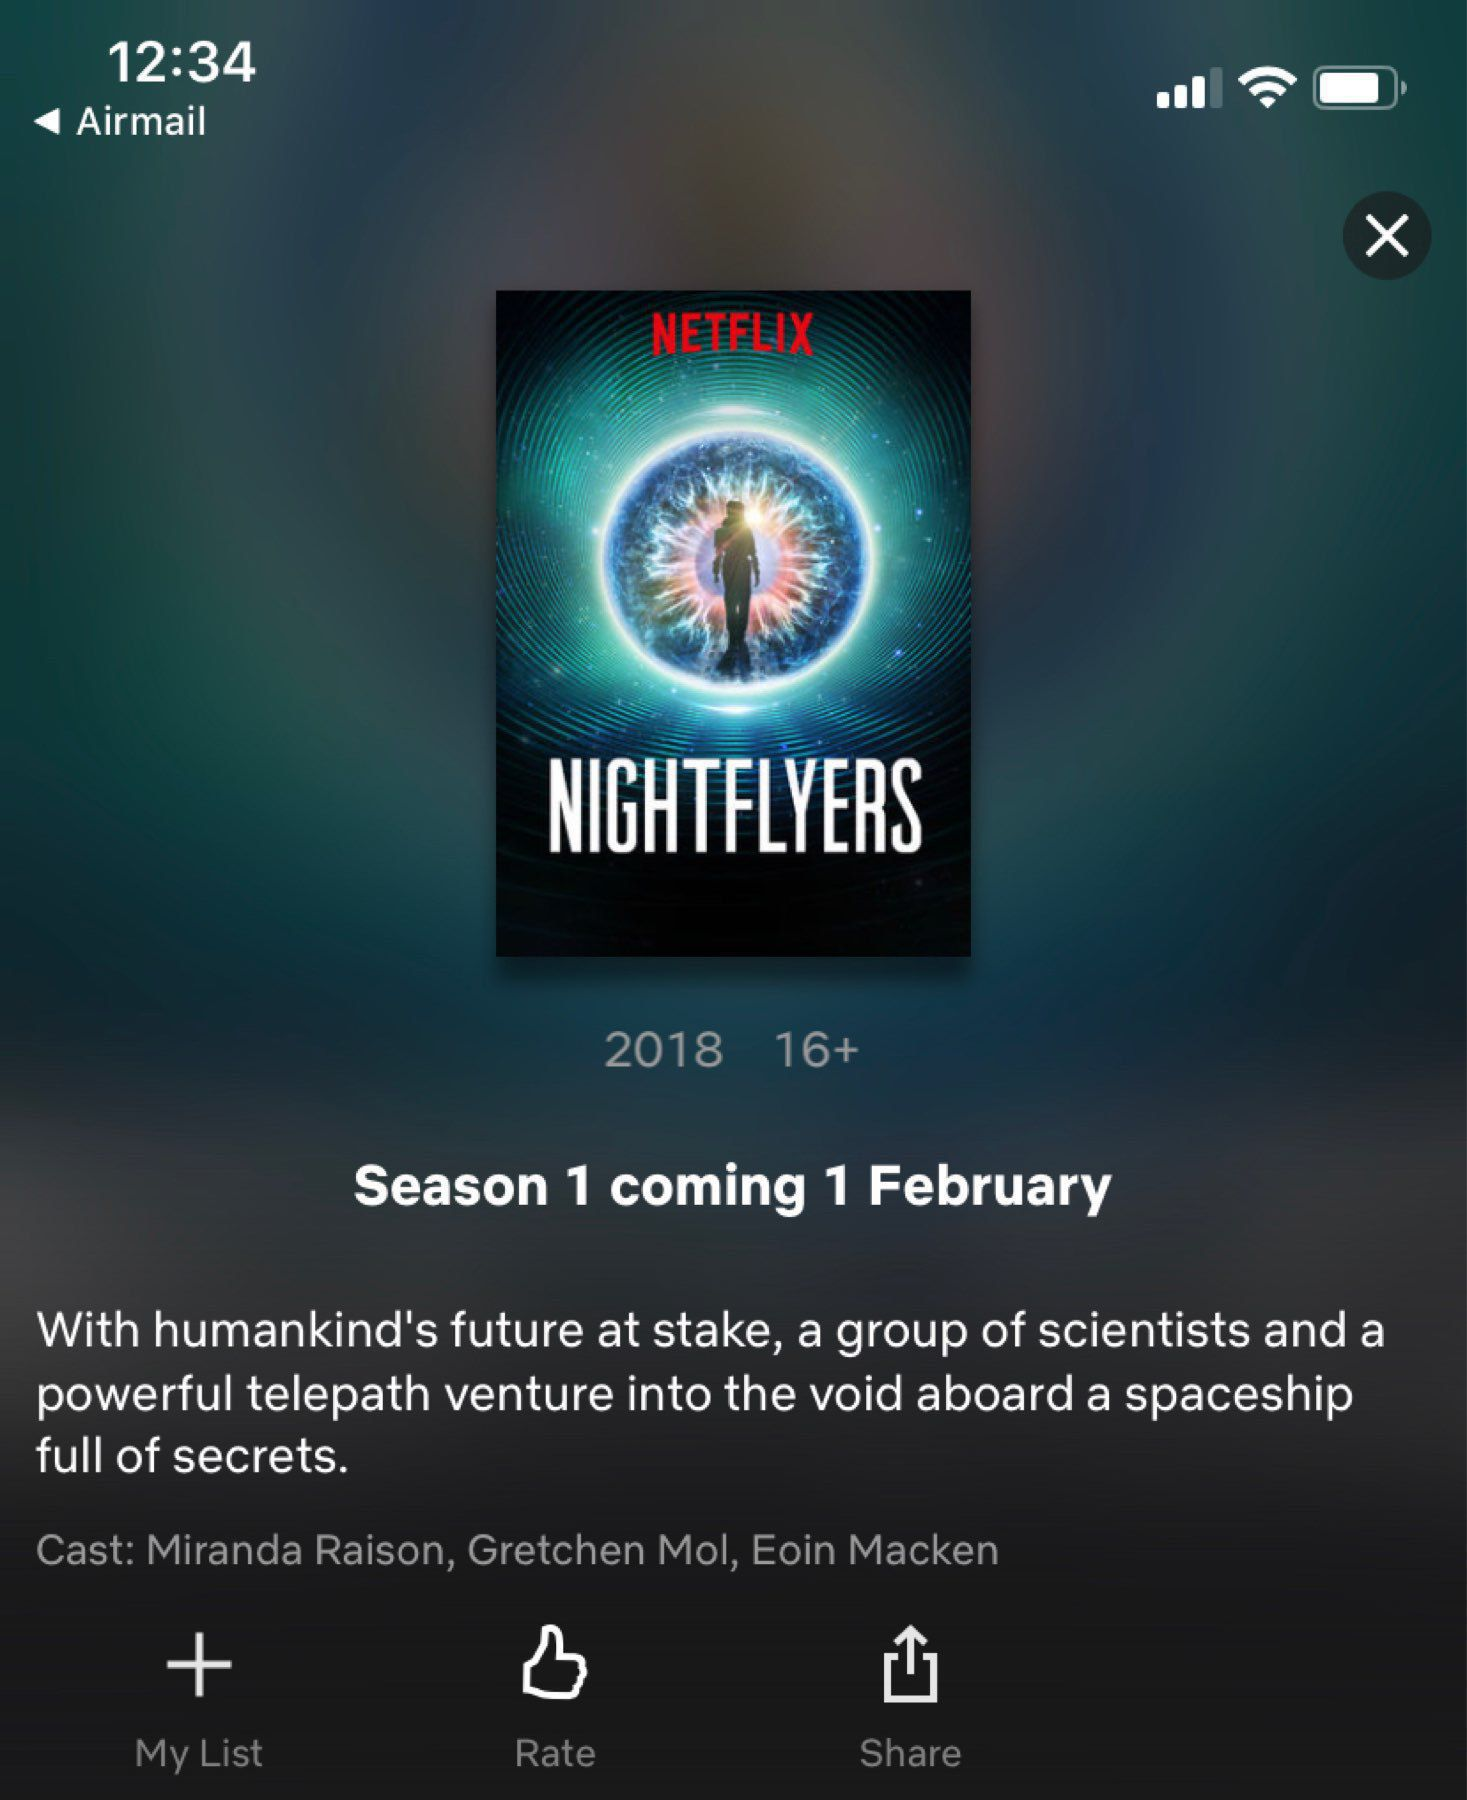 A screenshot of the Netflix screen for Nightfliers - a new sci-fi series